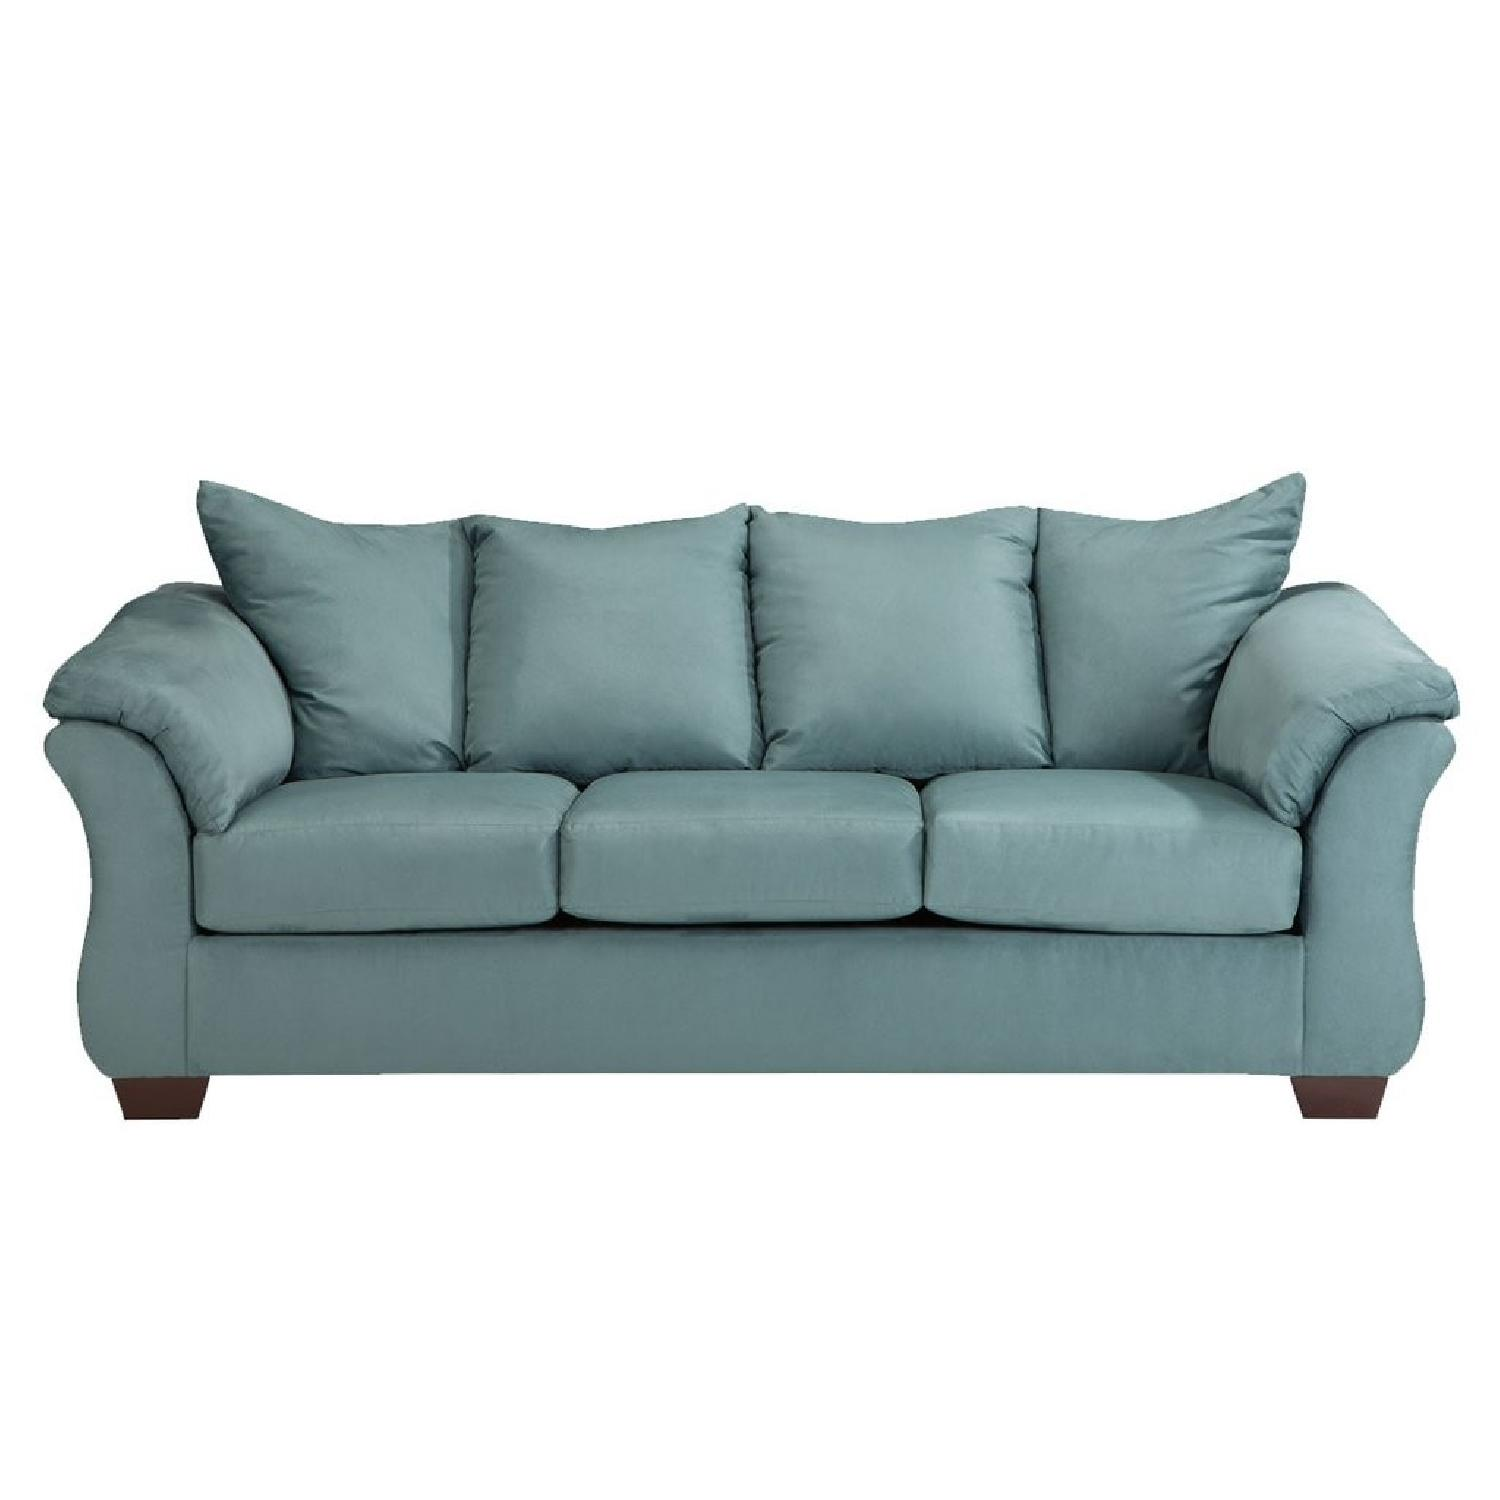 Sky Blue Upholstered Sofa